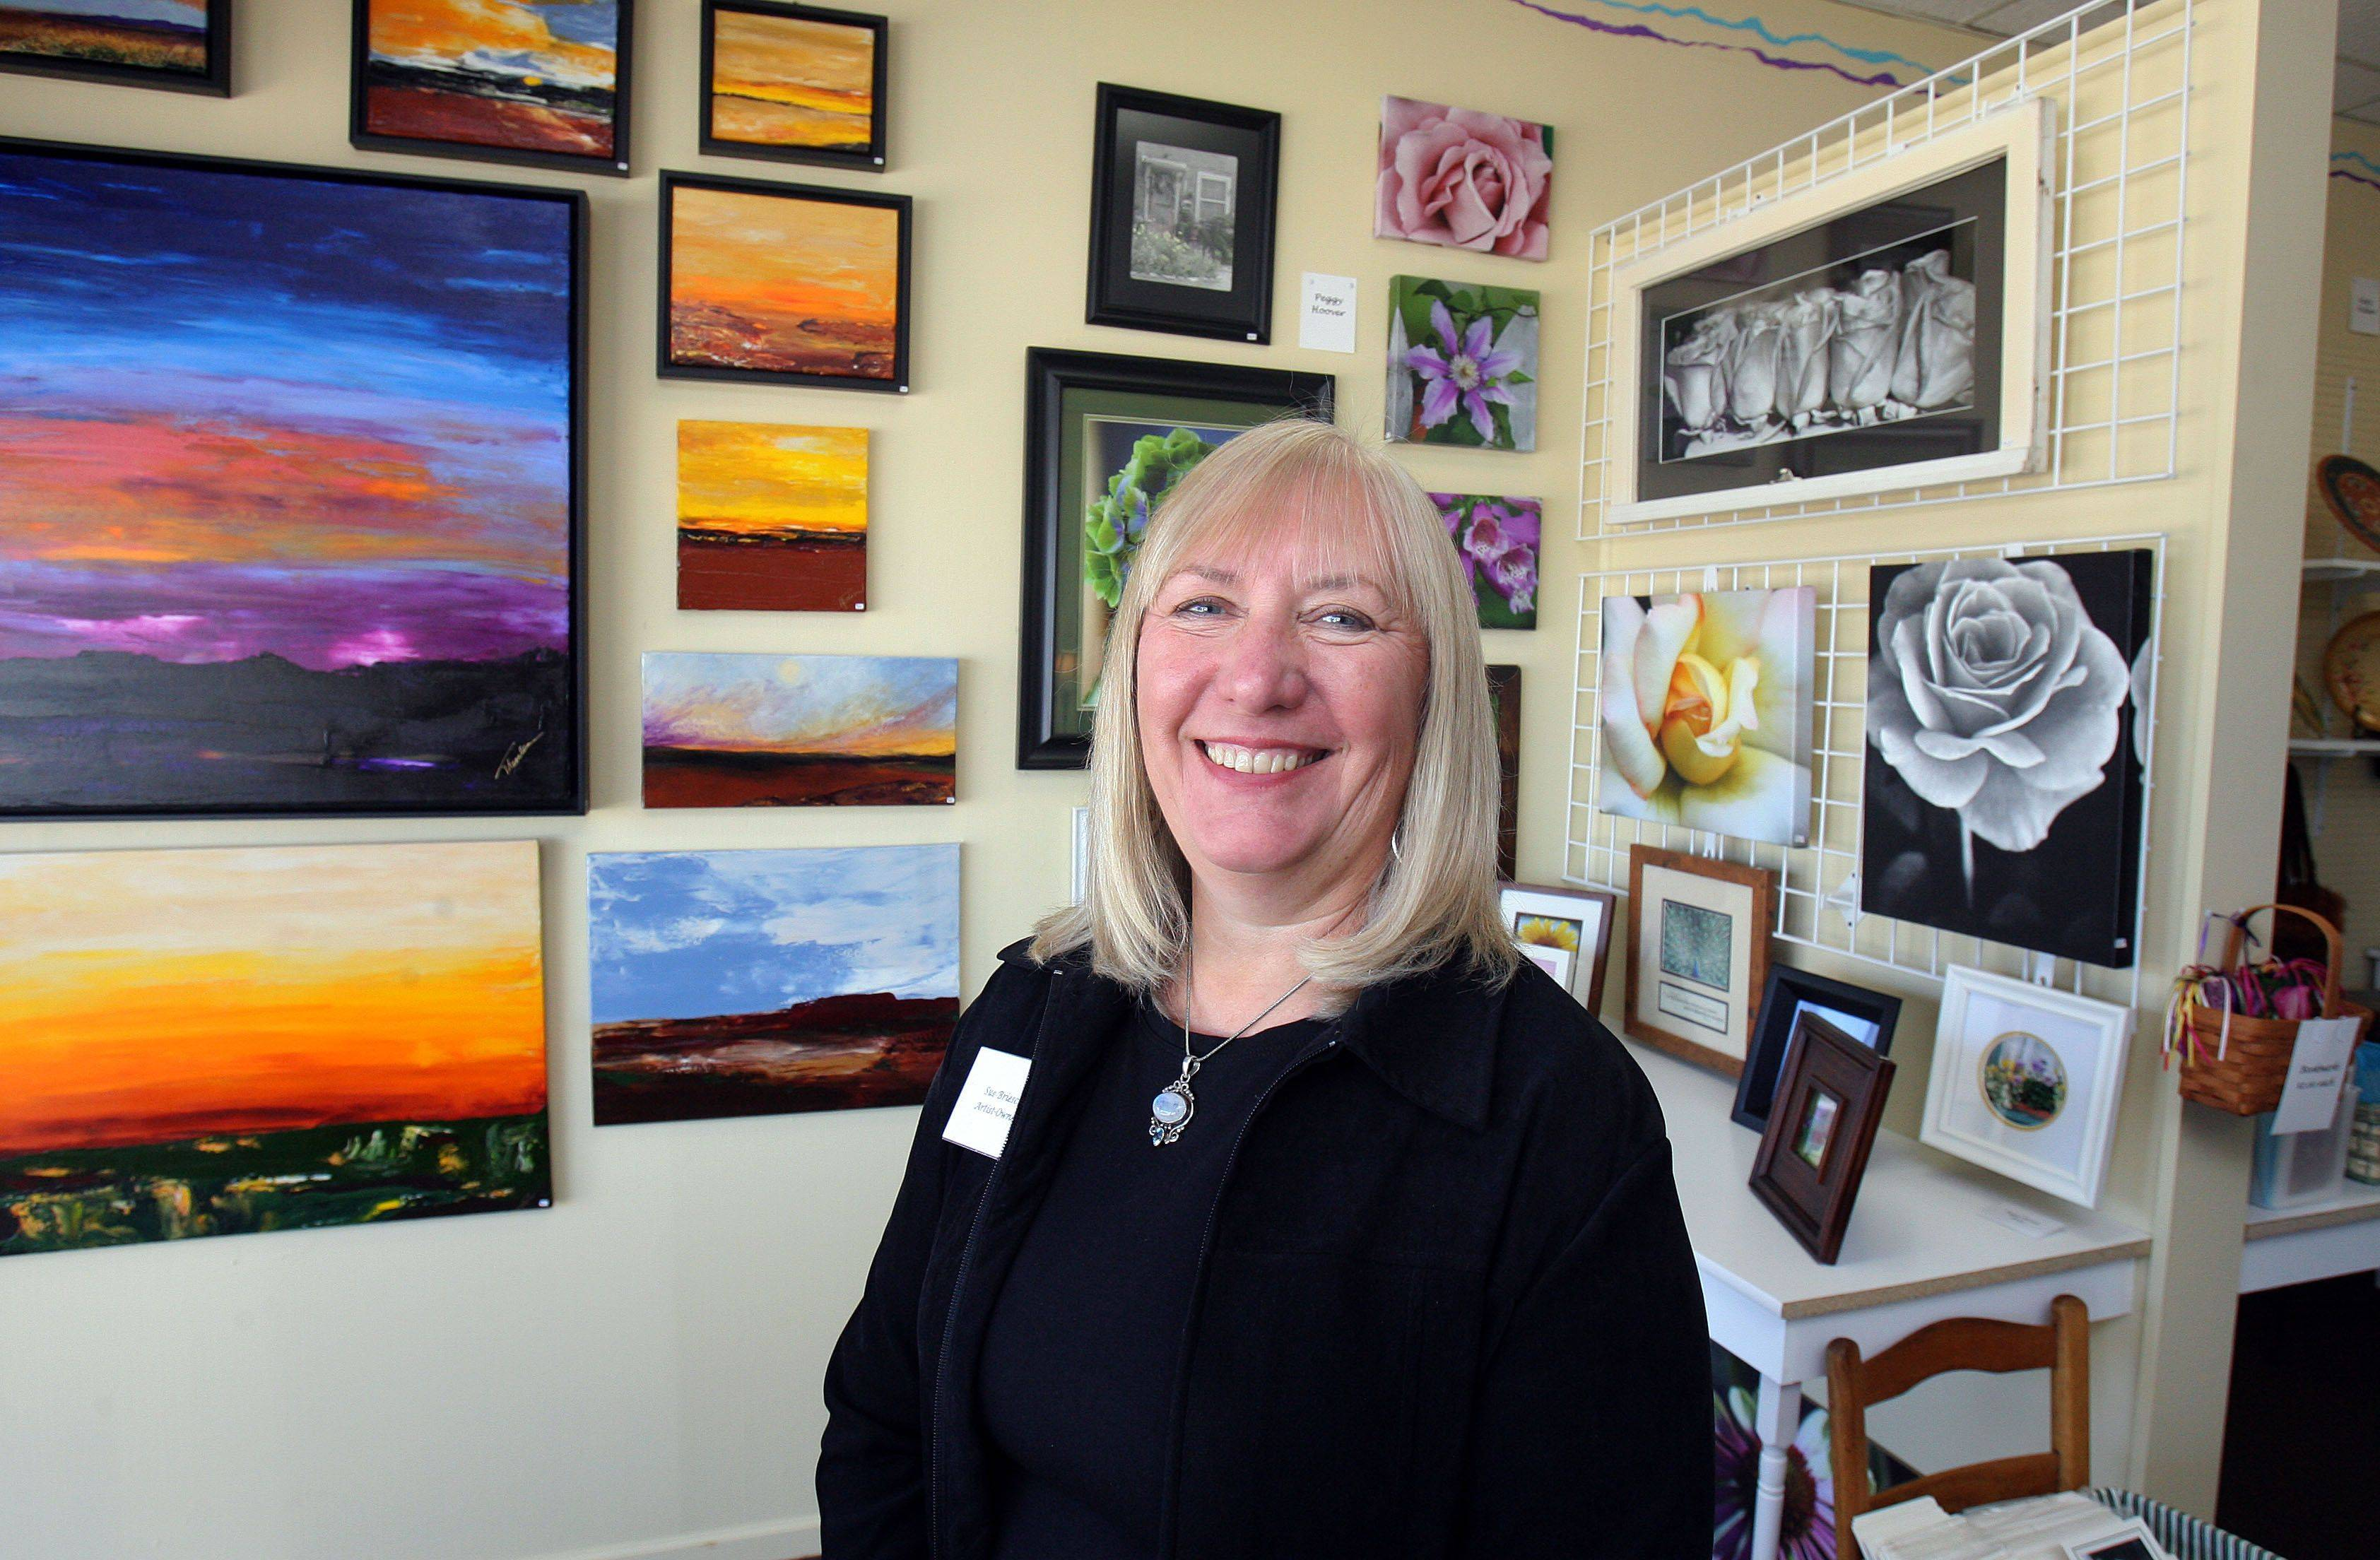 Sue Briesch, artist and owner of Wise Women Gallery in Lake Zurich, features various artwork and gifts.